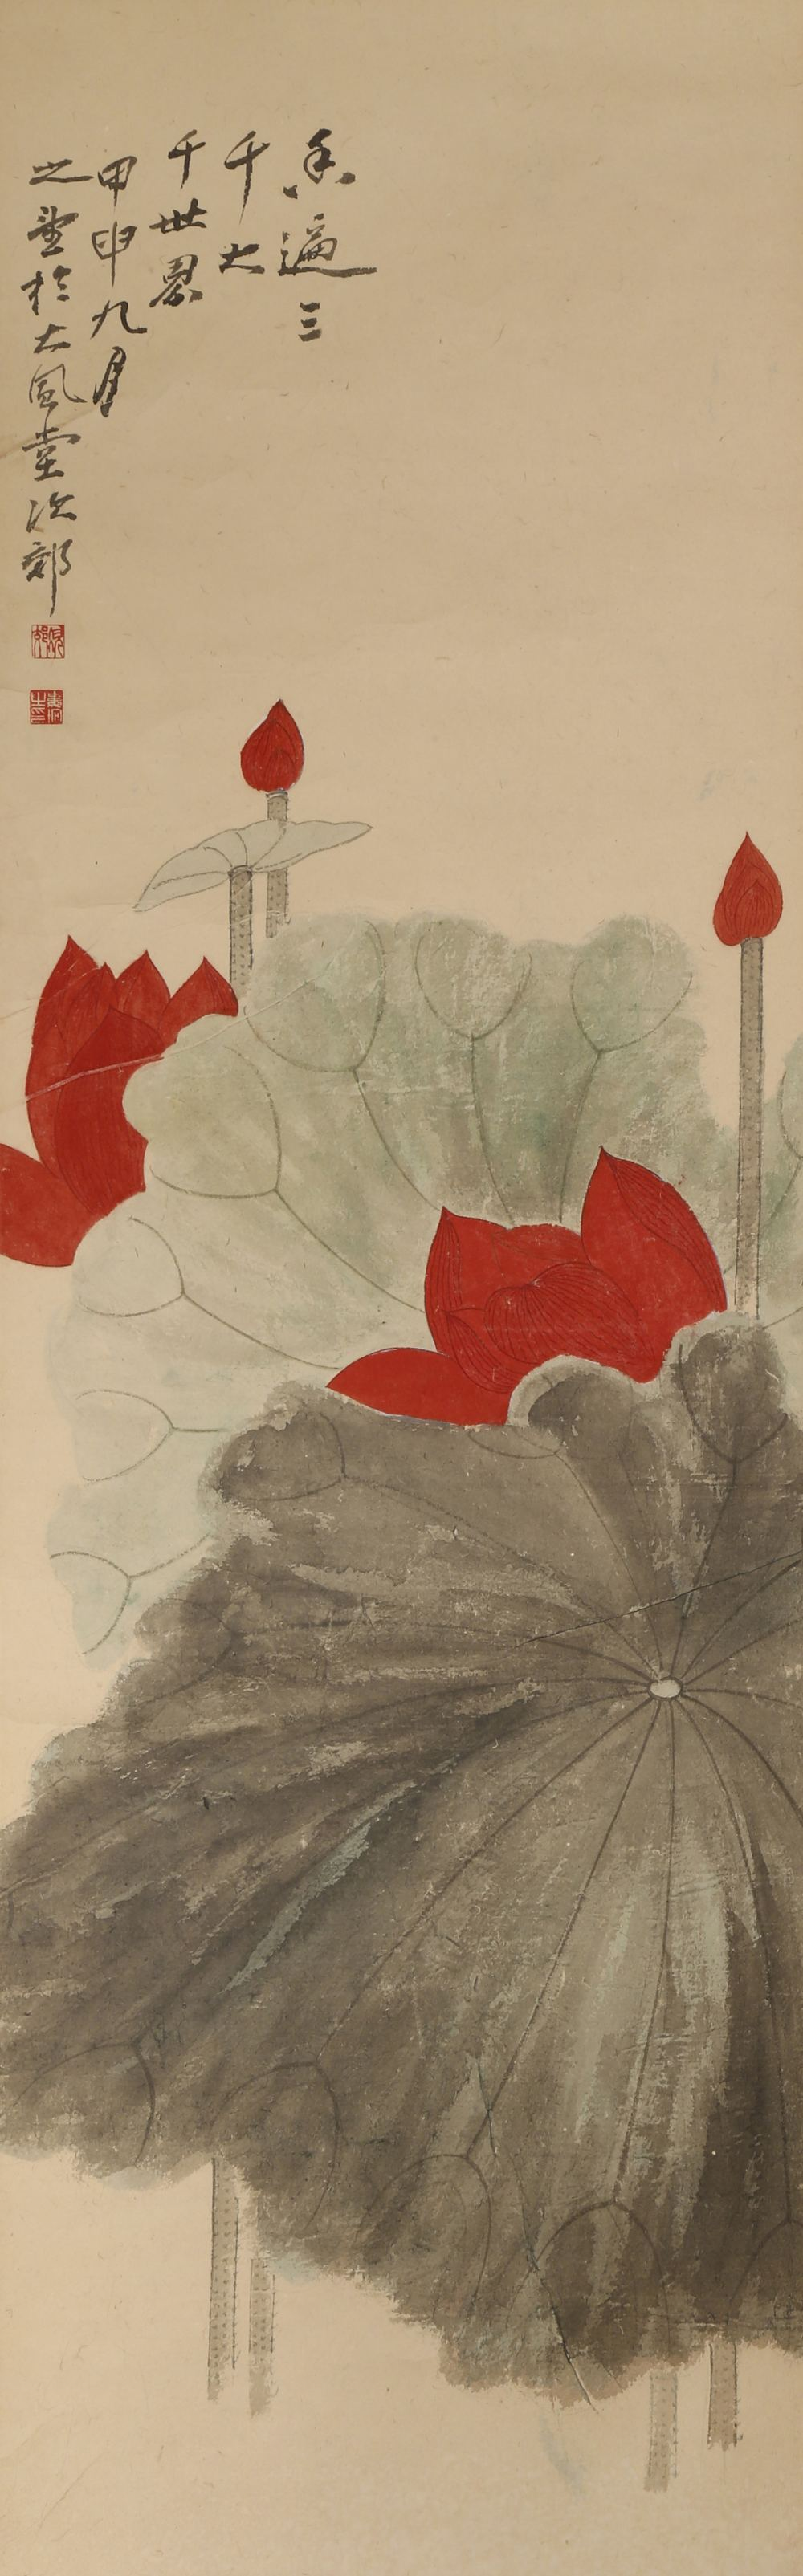 AFTER ZHANG DAQIAN (20TH CENTURY) LOTUS A Chinese scroll painting, ink and colour on paper,